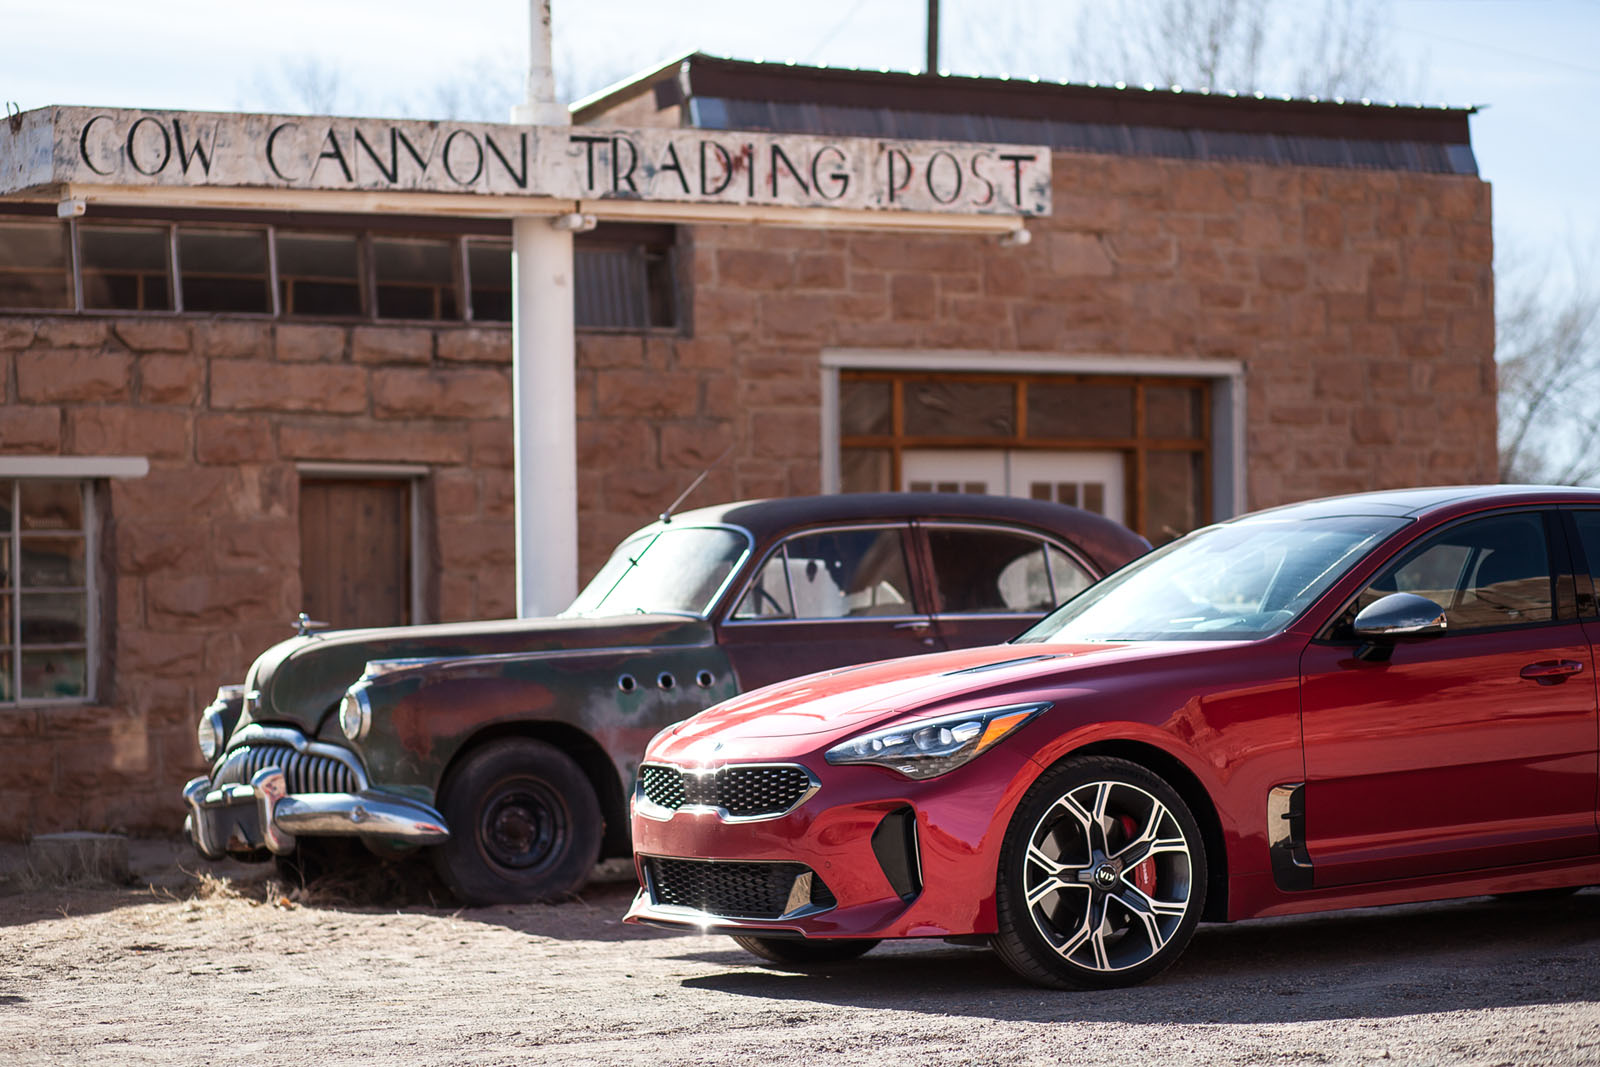 Kia Stinger Road Trip: Celebrating Our 2018 Car of the Year with a ...